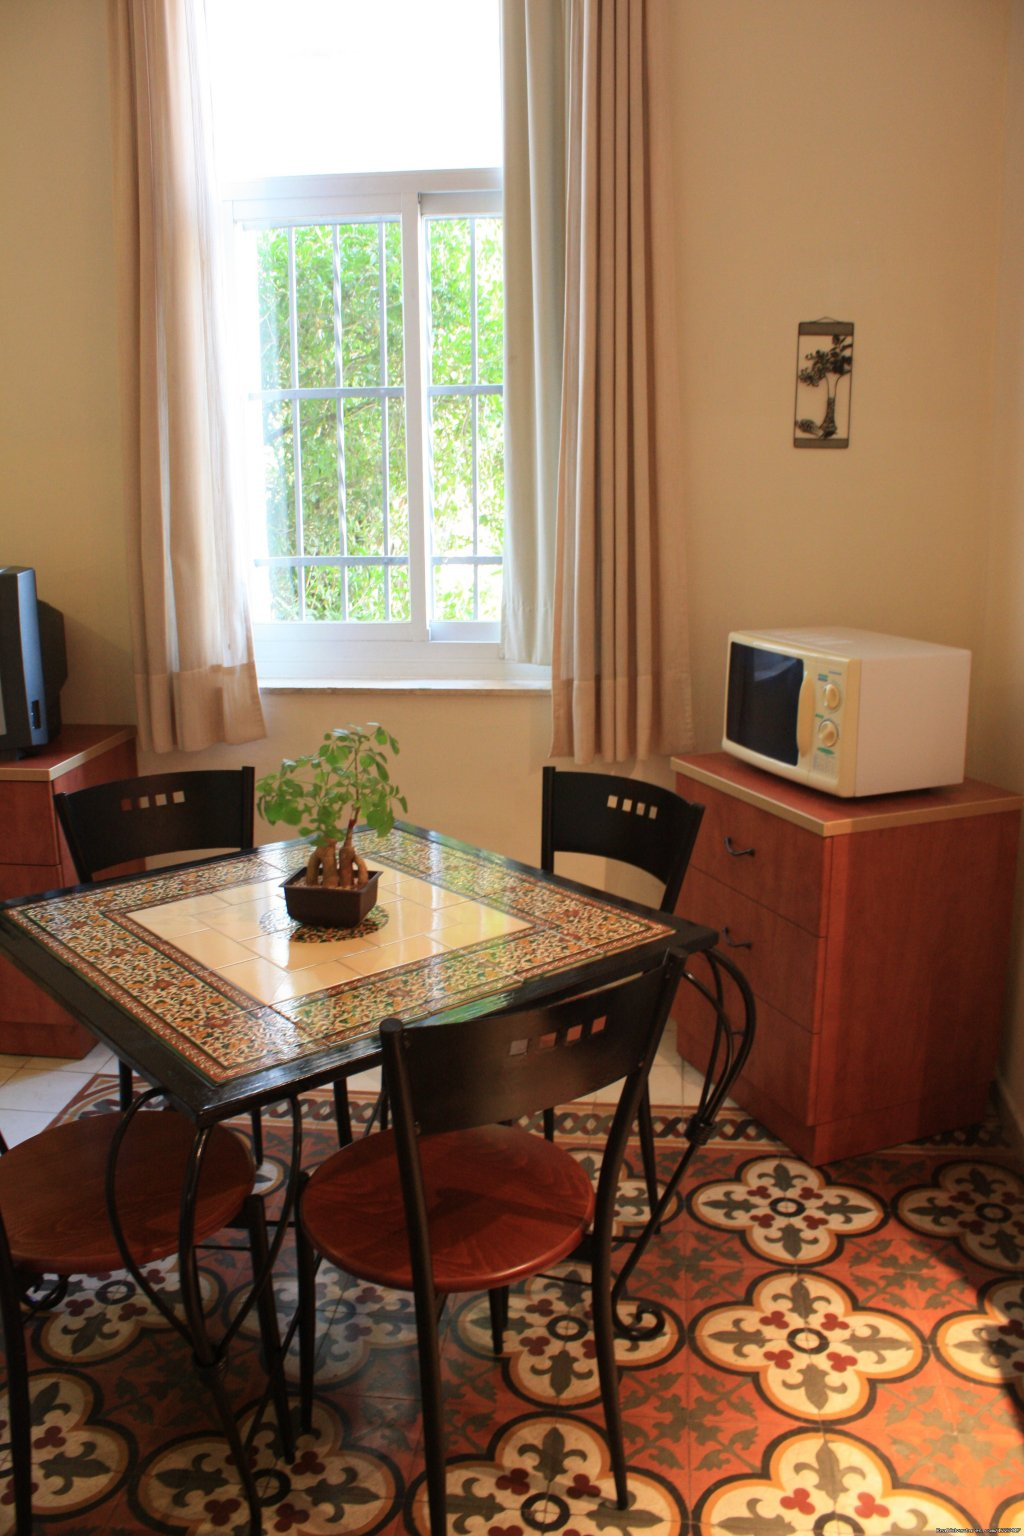 Modern, warm and immaculate self-catering studios, one bedroom and two bedroom apartments. The apartments are located in the central neighborhood of Jerusalem with a short walk to the Old City and to many of the amazing attractions of the city.